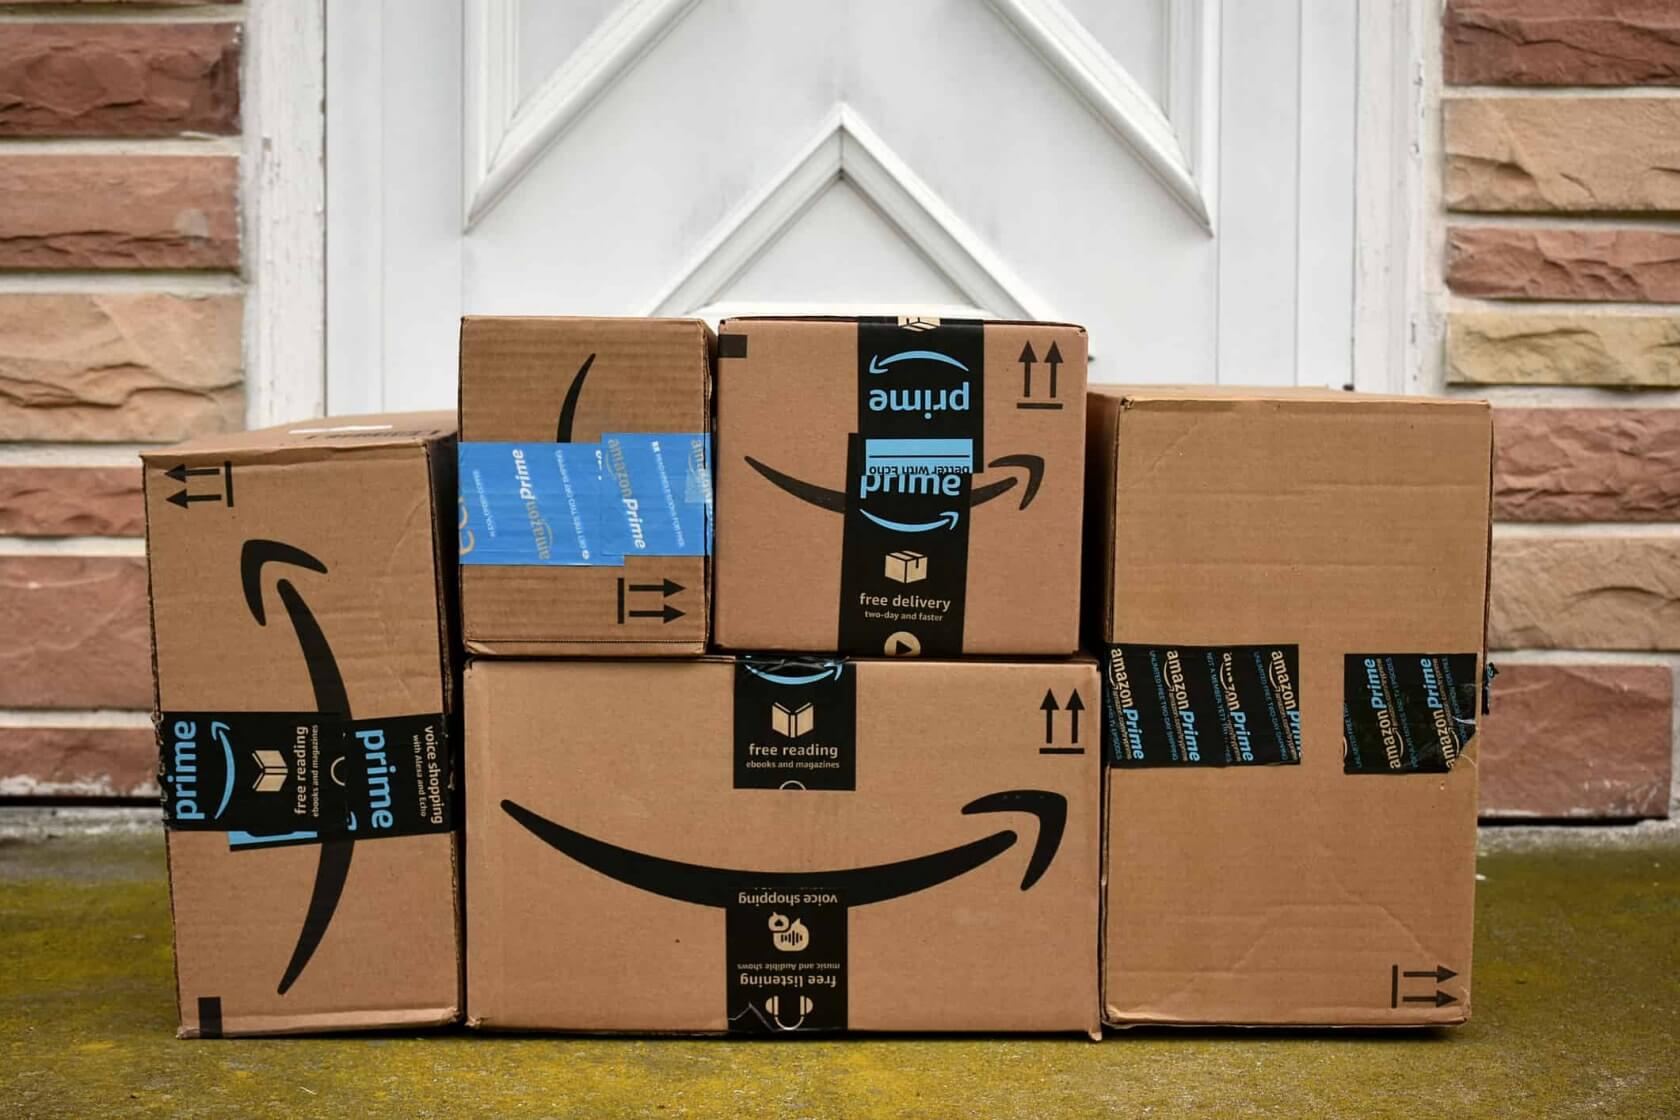 Amazon expands its controversial 'Key' delivery system, allows for ...